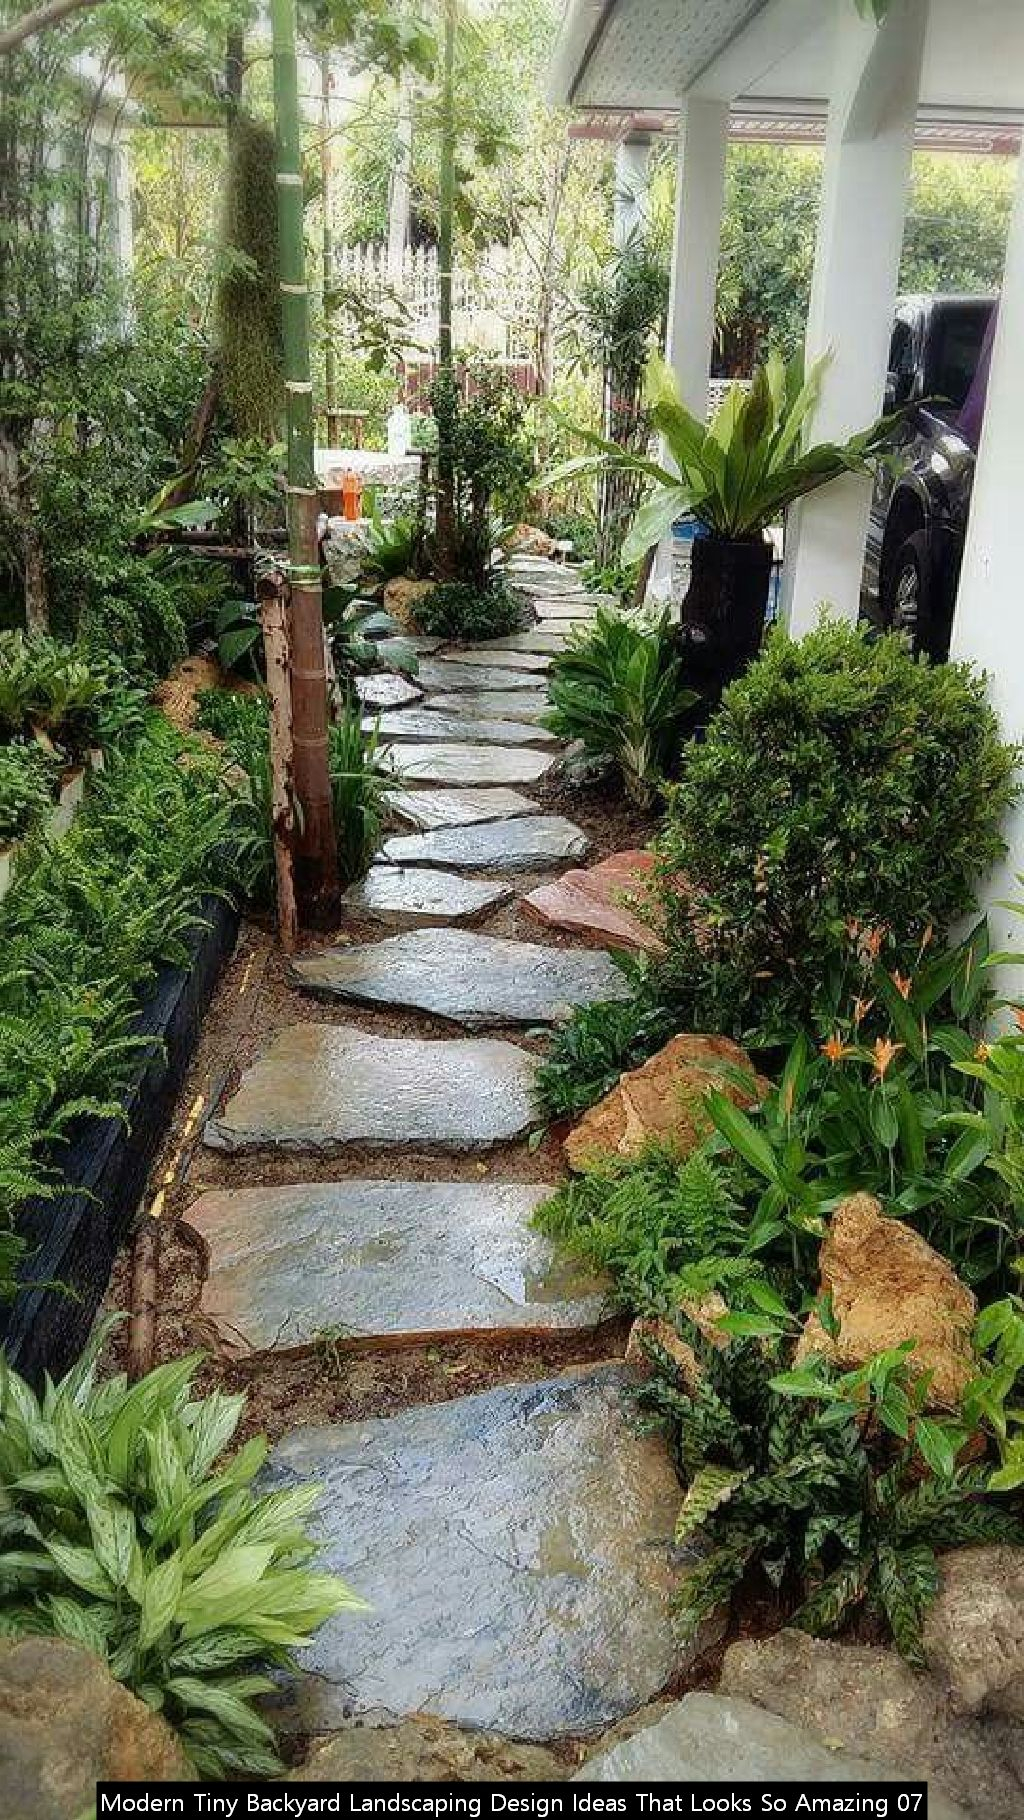 Modern Tiny Backyard Landscaping Design Ideas That Looks So Amazing 07